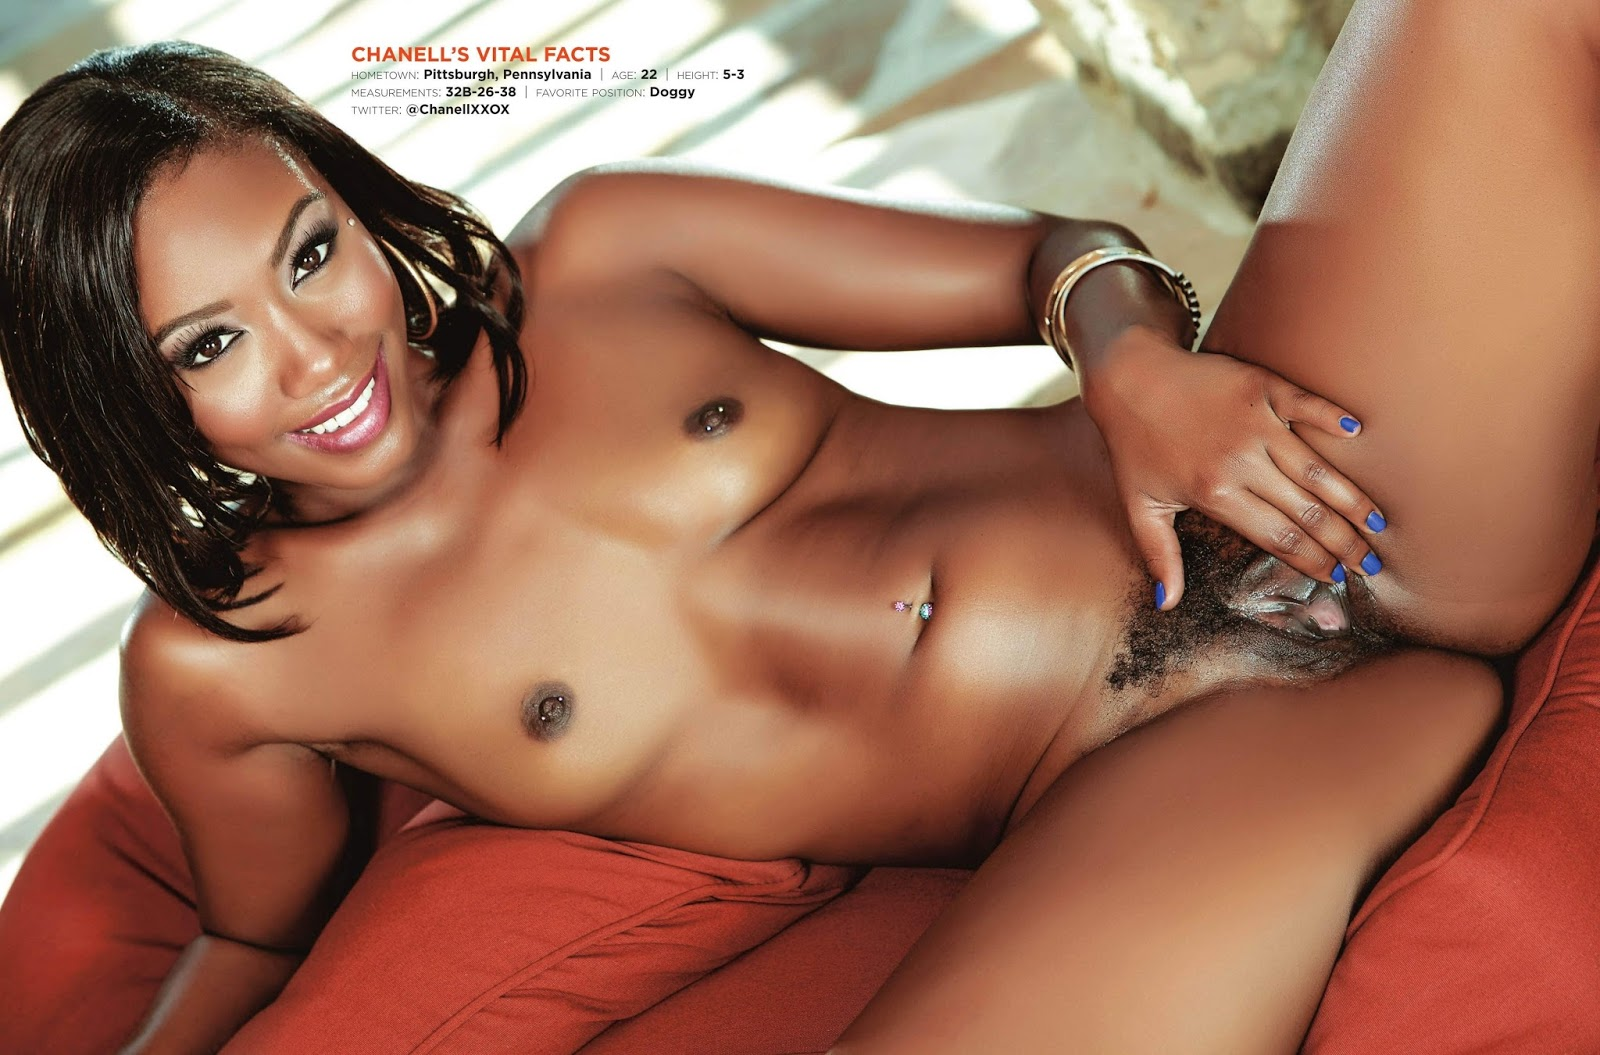 Chanell Heart Chanellxxox Featured In Hustler Magazine -1828